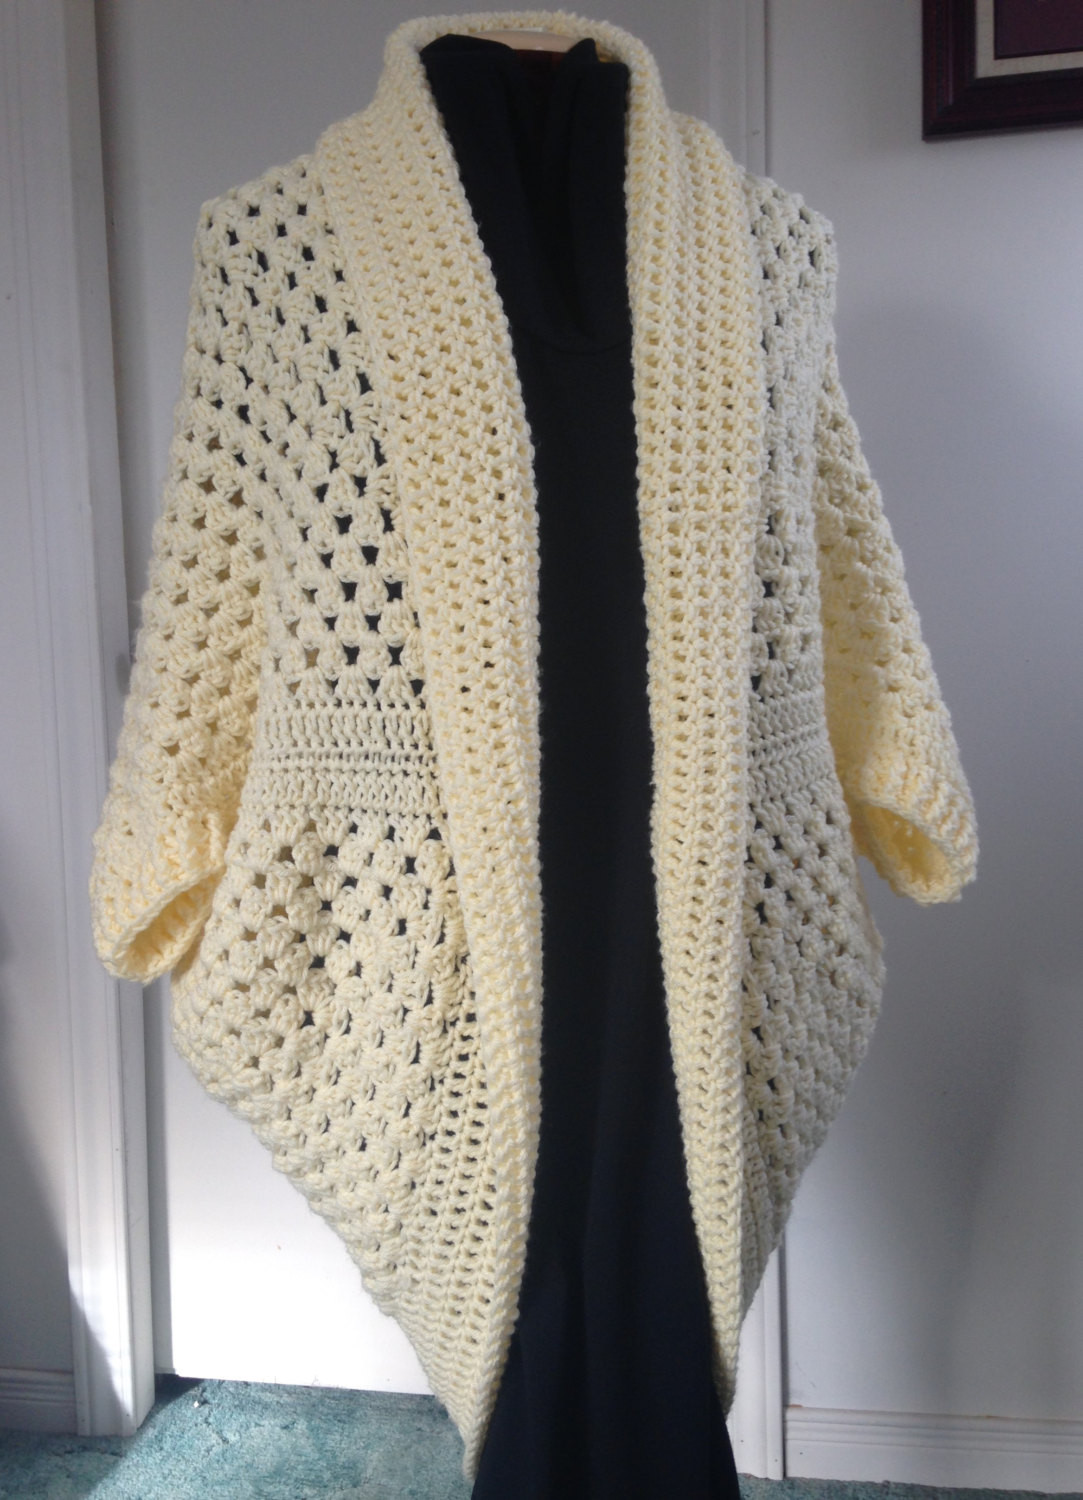 Lovely Crochet Granny Square Cocoon Sweater Cardigan Shrug In Cream Crochet Cocoon Cardigan Of Charming 45 Pics Crochet Cocoon Cardigan